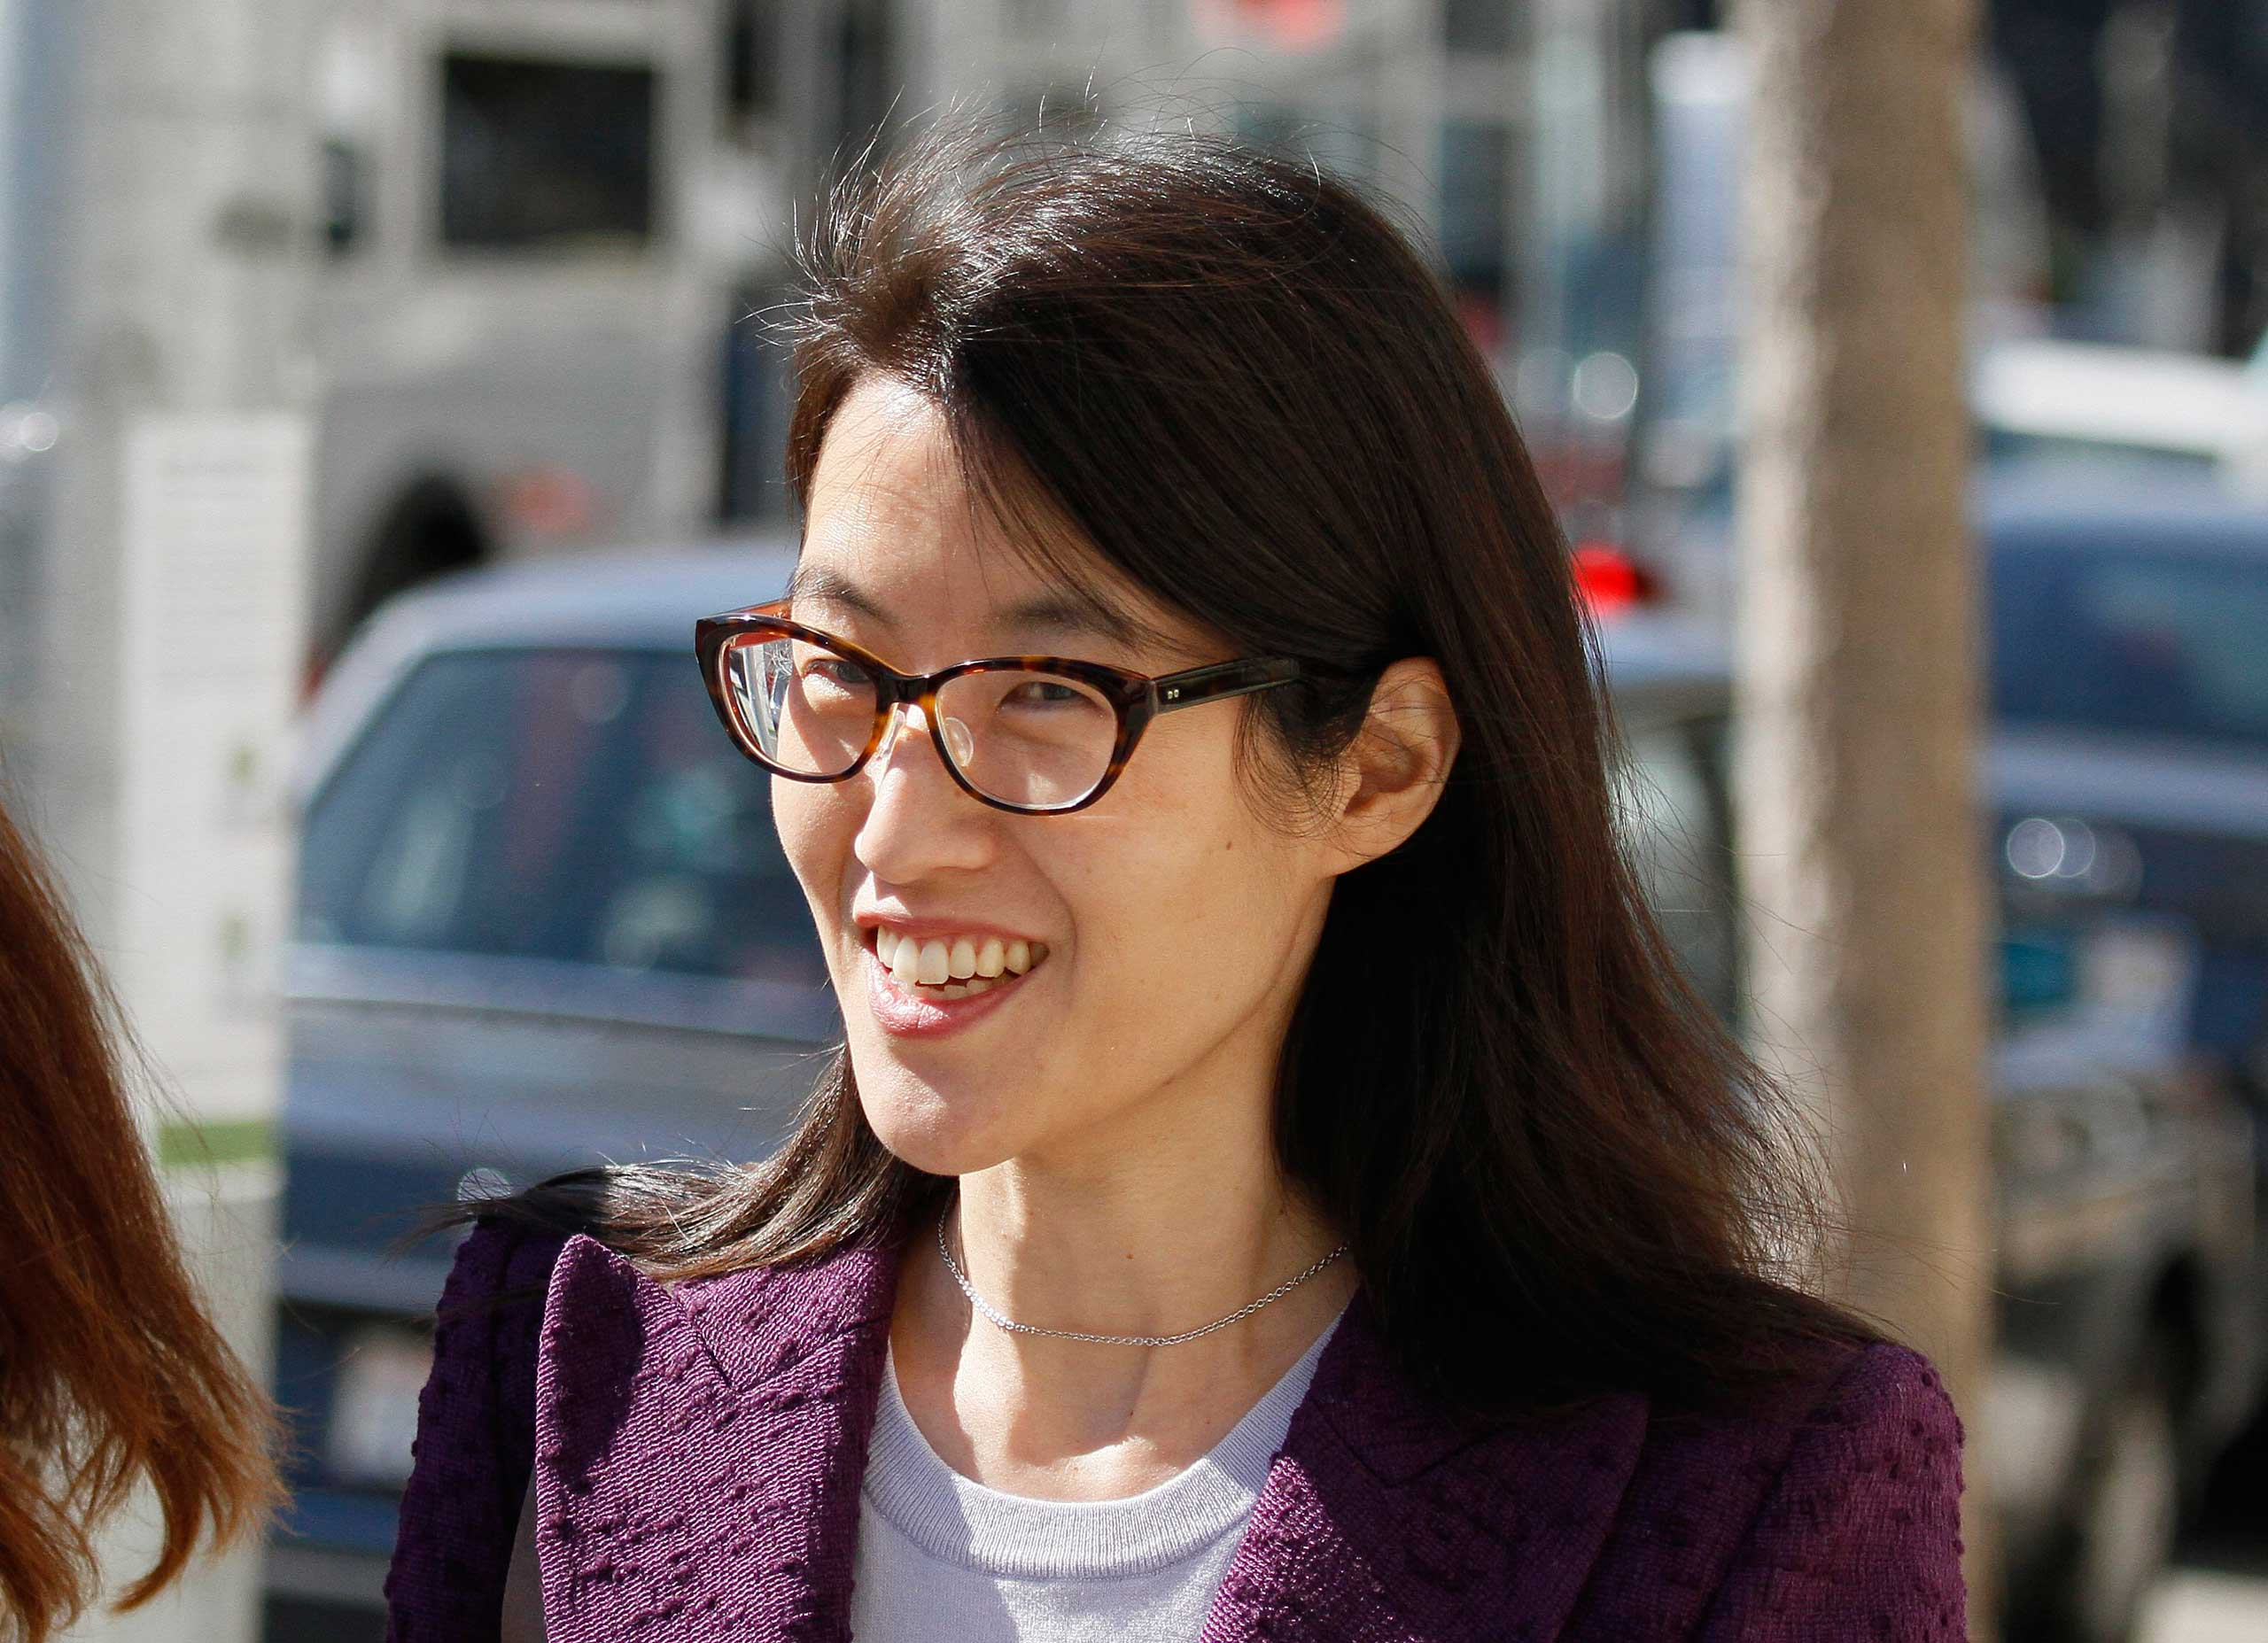 Ellen Pao leaves the Civic Center Courthouse during a lunch break in her trial in San Francisco on Feb. 24, 2015.